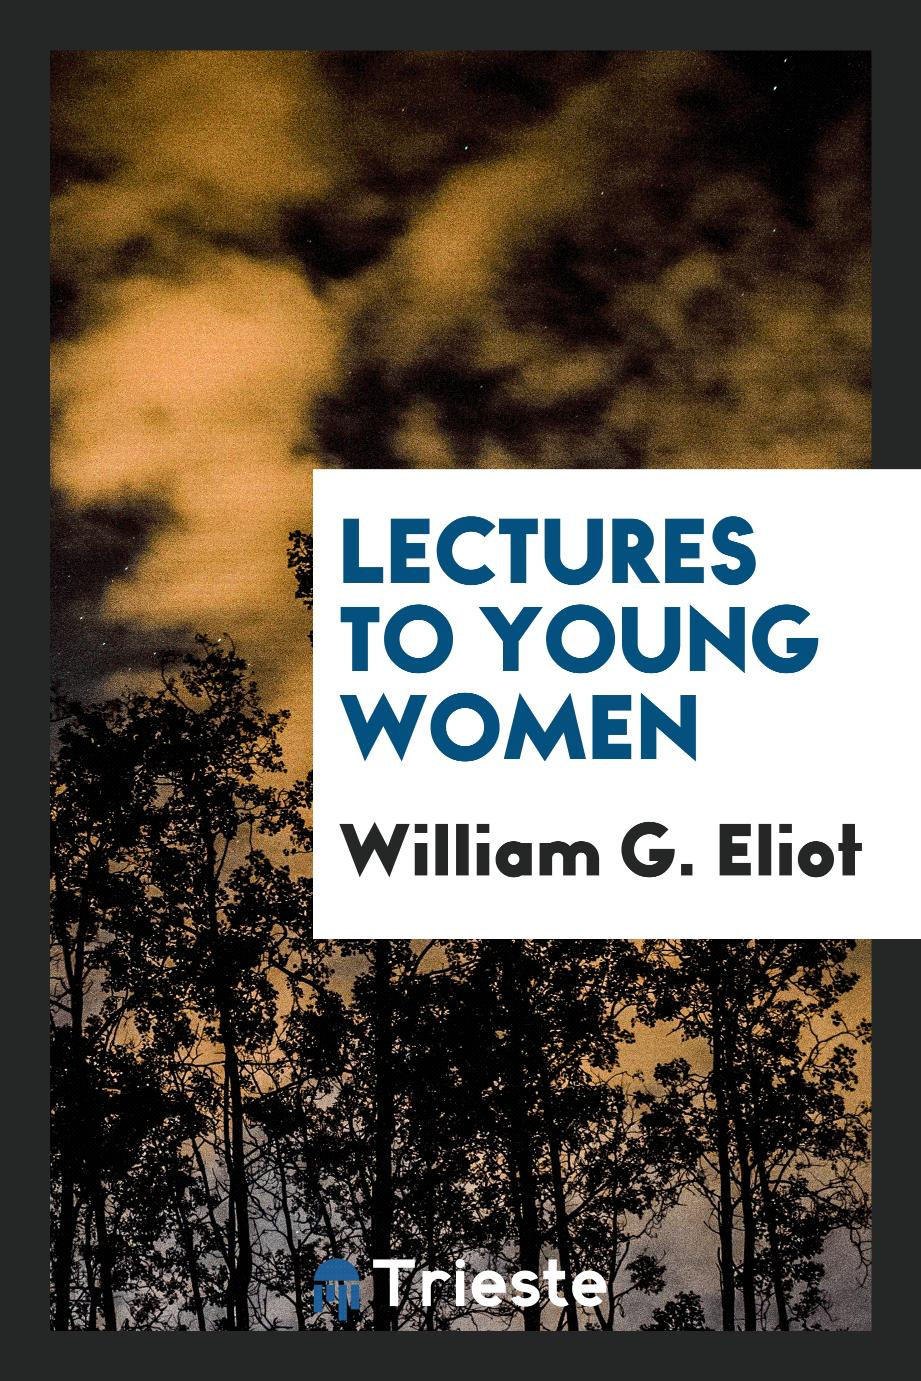 Lectures to Young Women